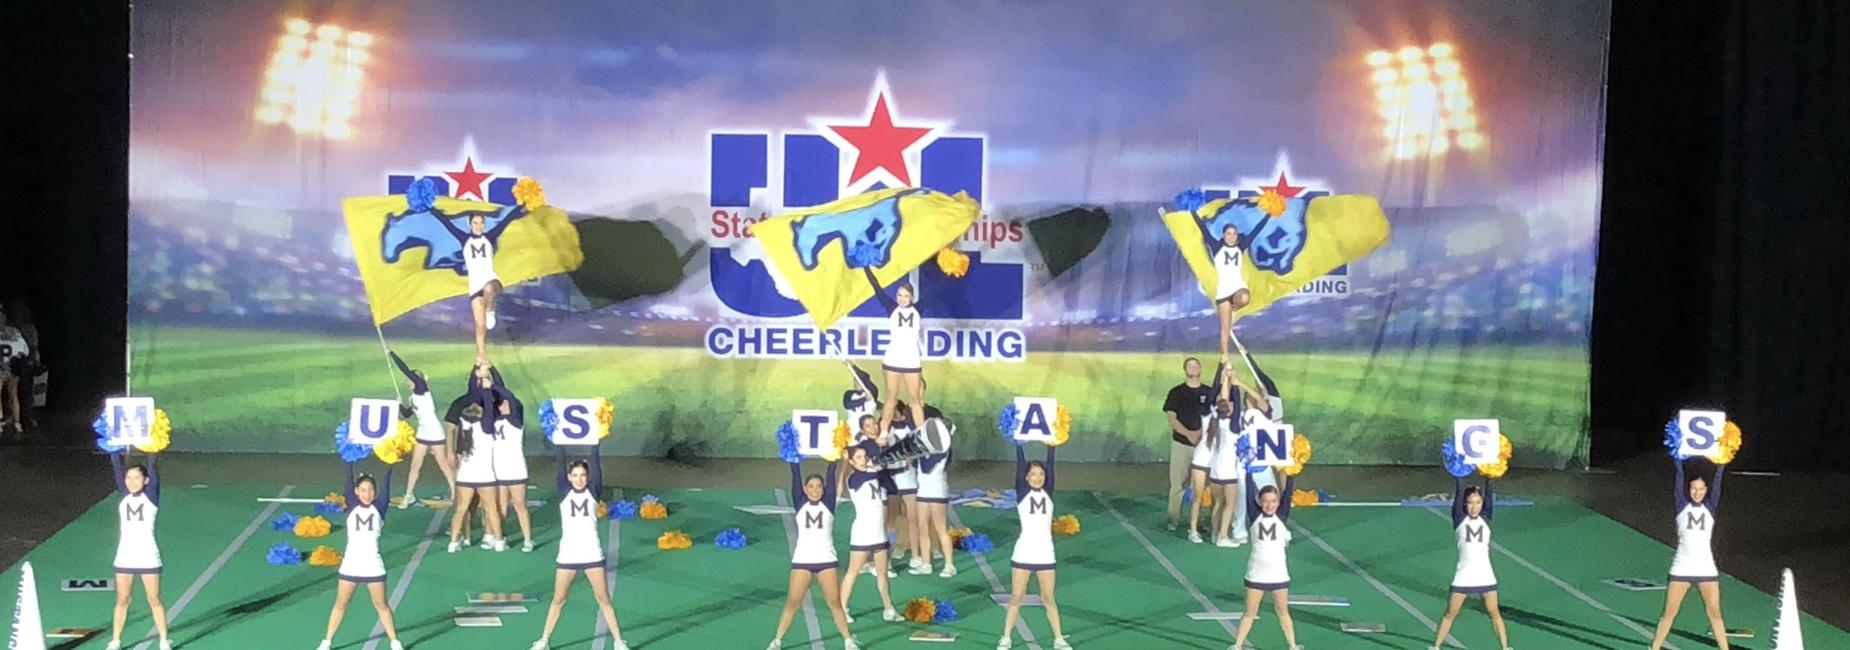 cheerleaders at UIL State championships